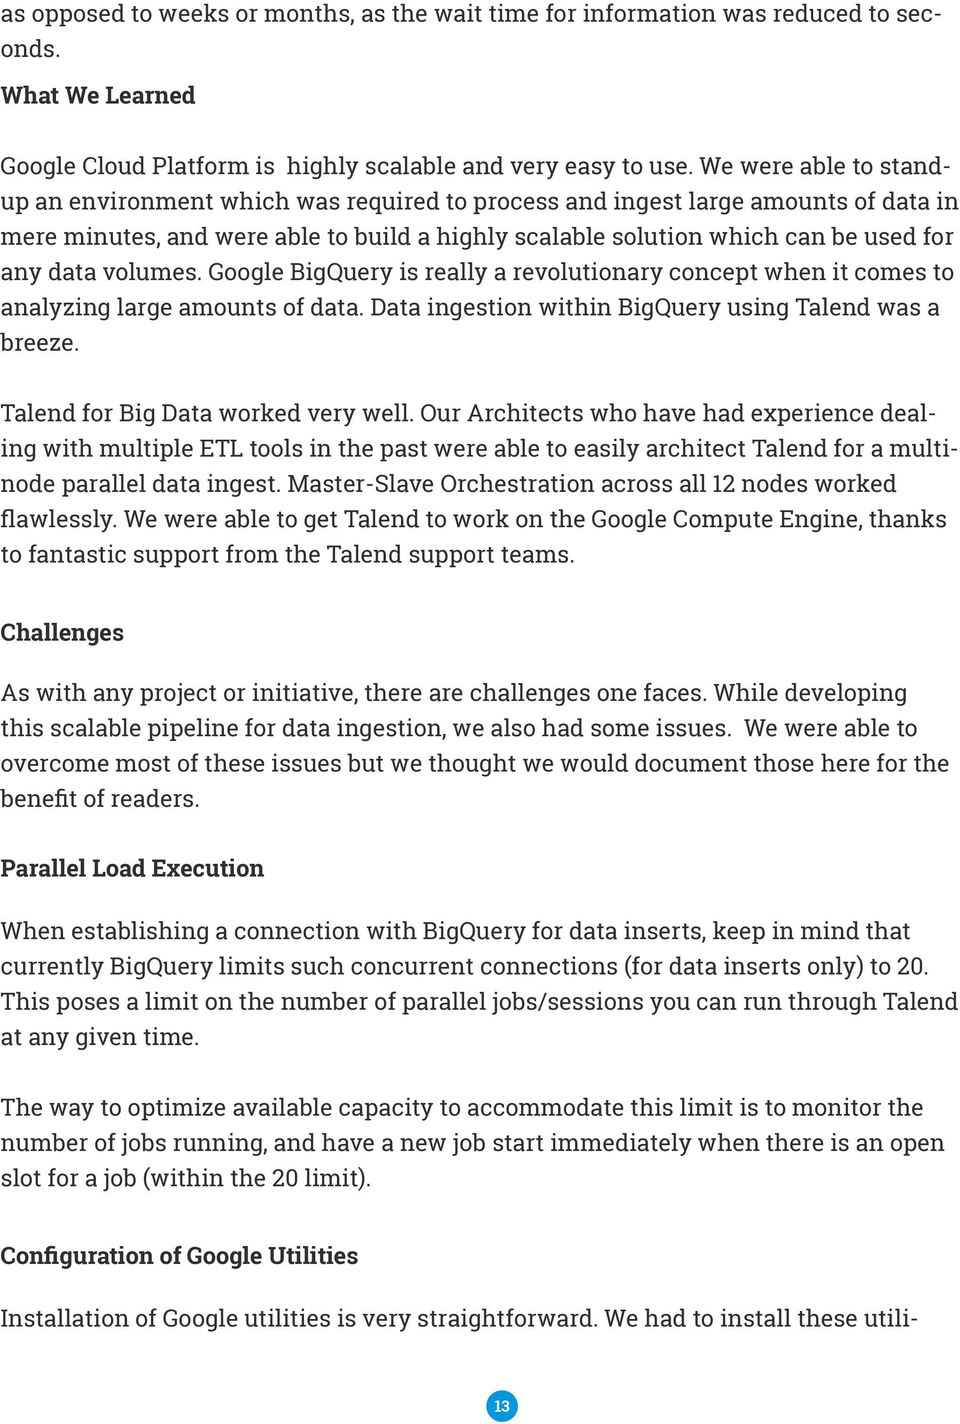 volumes. Google BigQuery is really a revolutionary concept when it comes to analyzing large amounts of data. Data ingestion within BigQuery using Talend was a breeze.